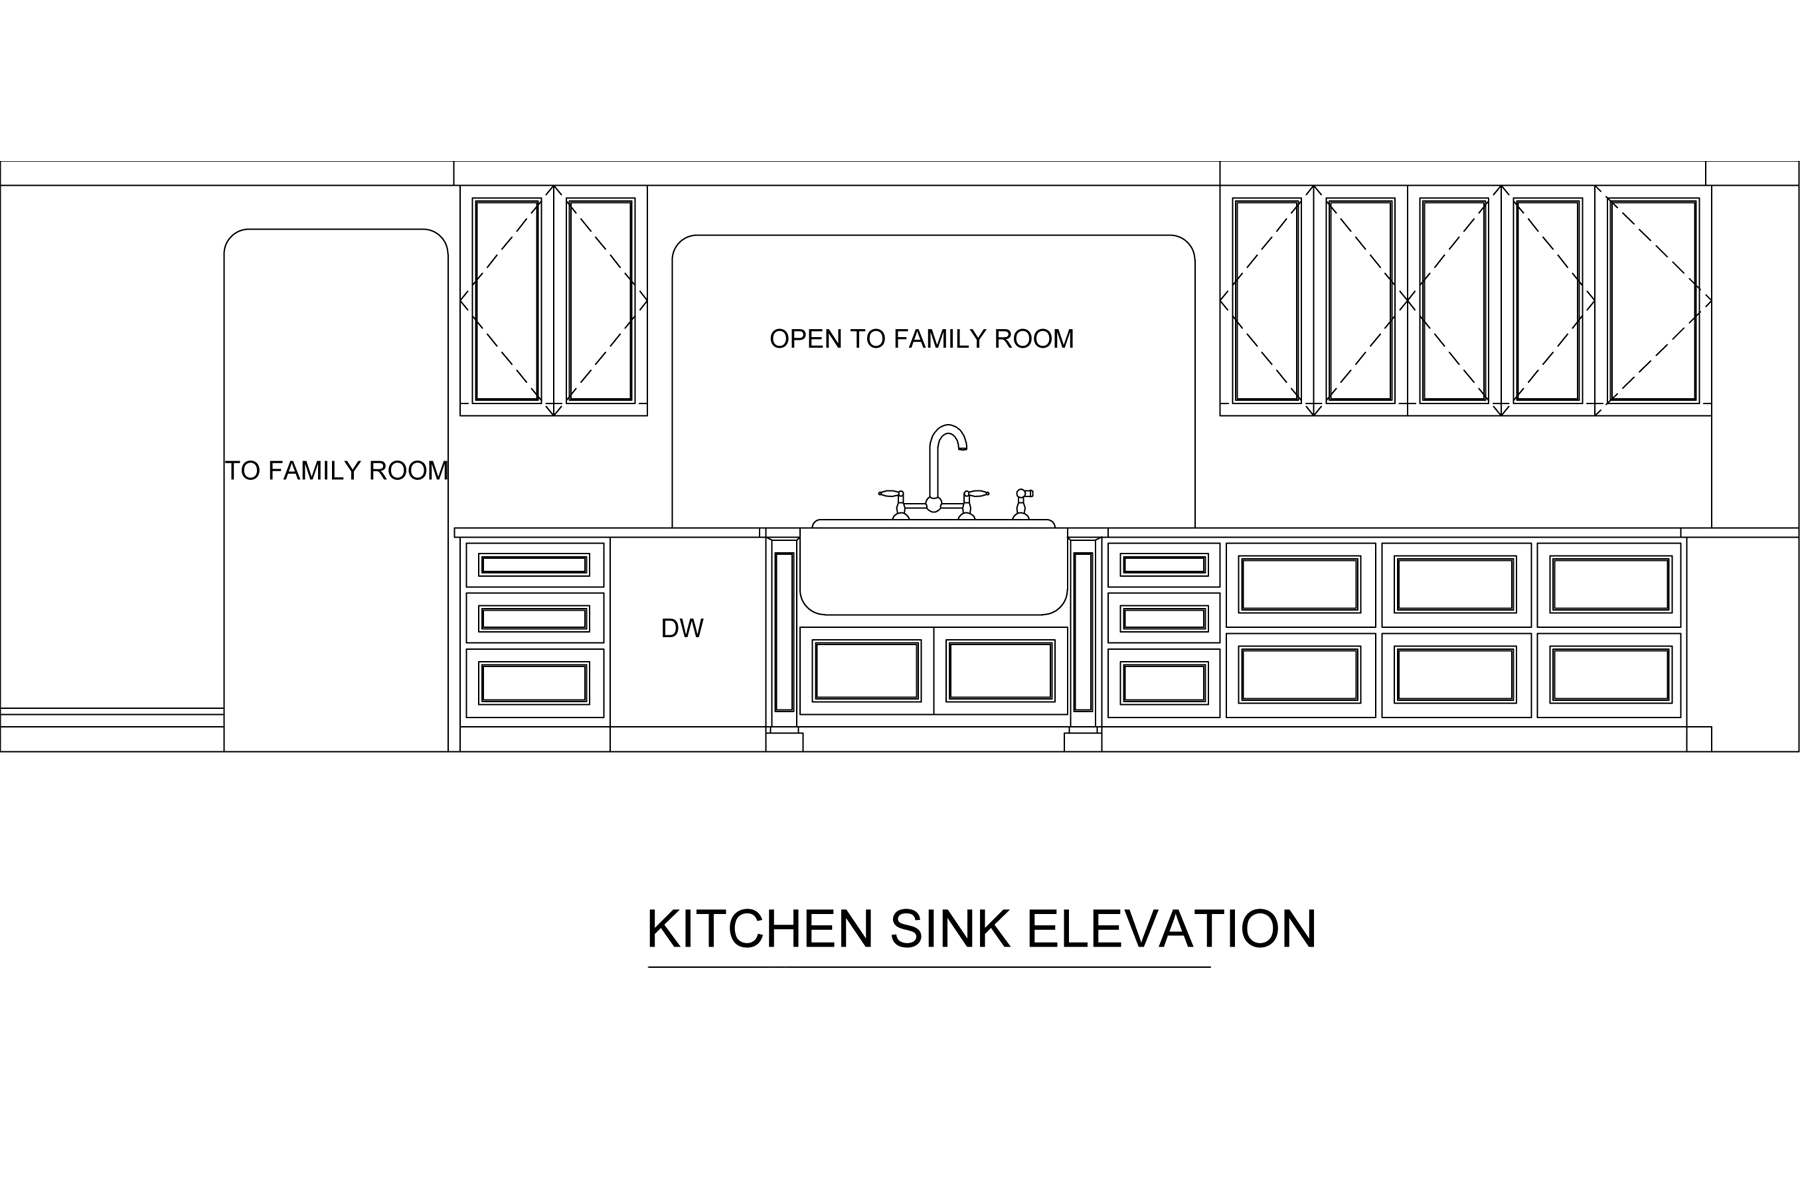 Kitchen sink wall elevation for kitchen remodel by Jamie House Design